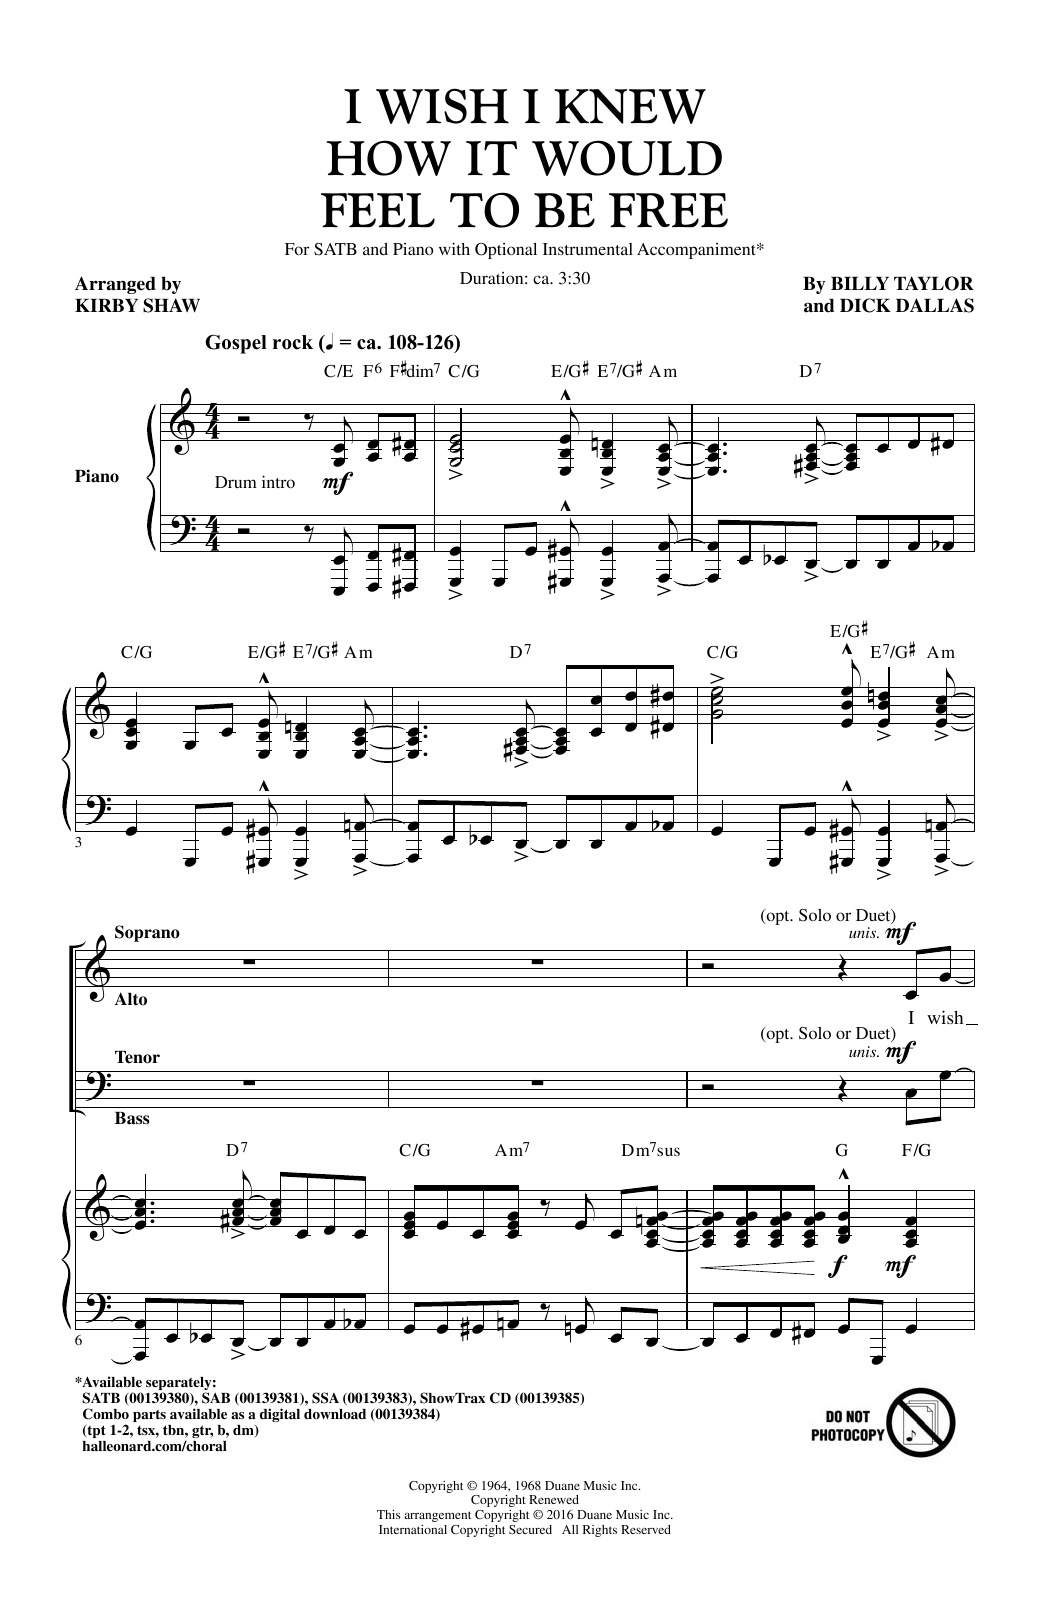 Billy Taylor I Wish I Knew How It Would Feel To Be Free (arr. Kirby Shaw) sheet music notes and chords. Download Printable PDF.